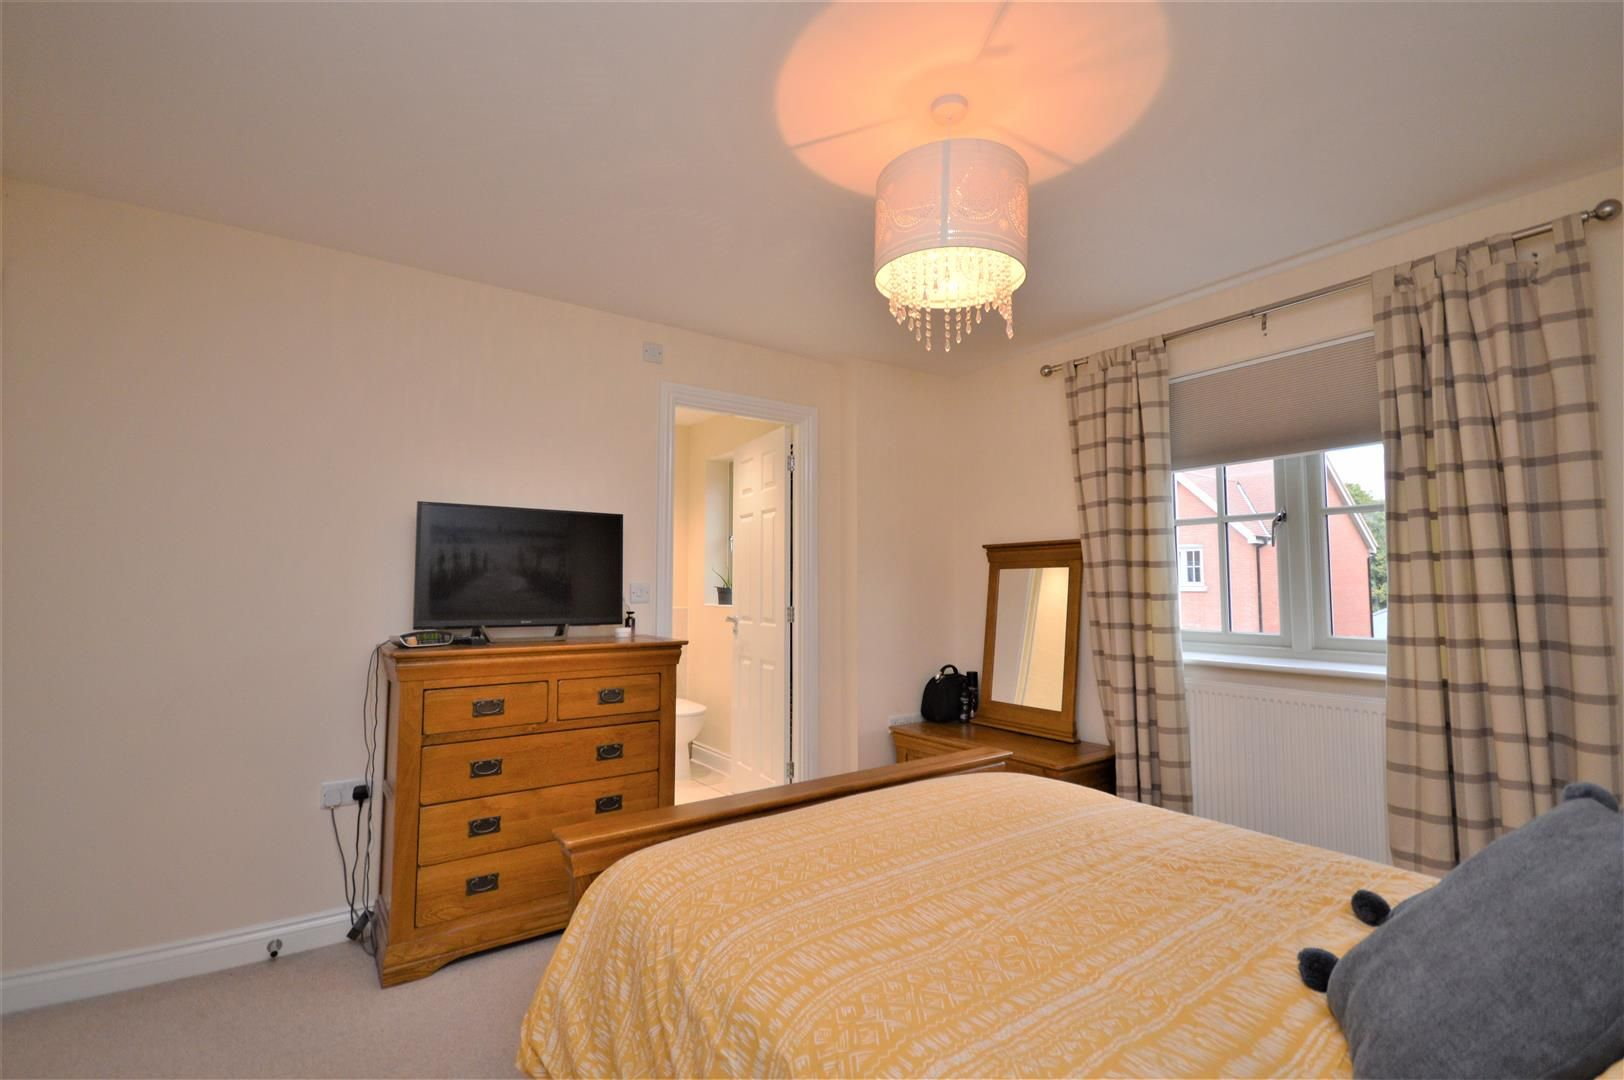 3 bed semi-detached for sale in Bodenham  - Property Image 8